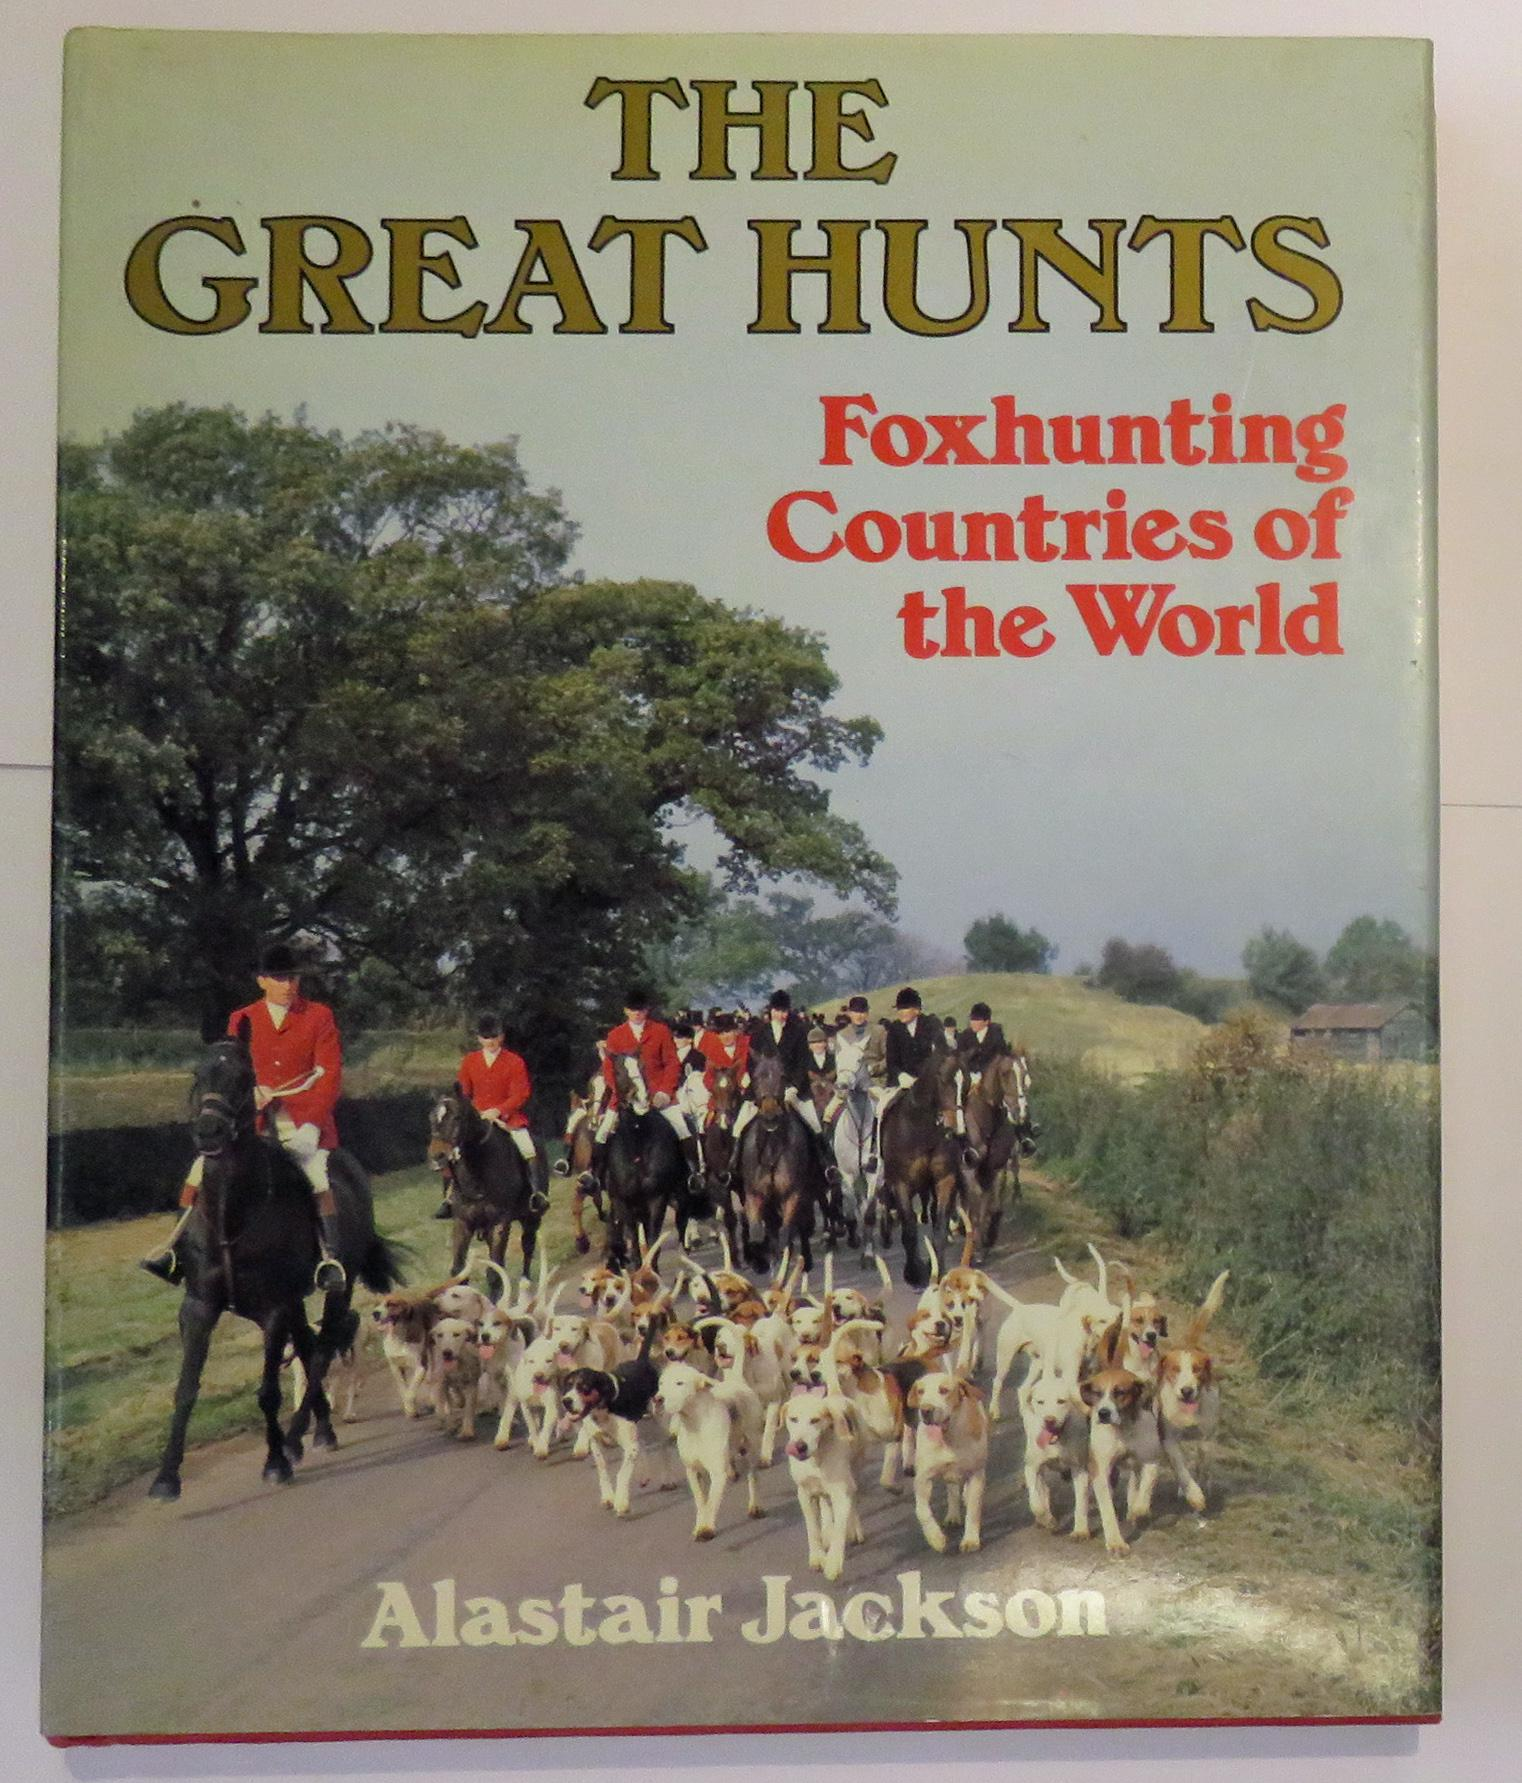 The Great Hunts Foxhunting Countries of the World